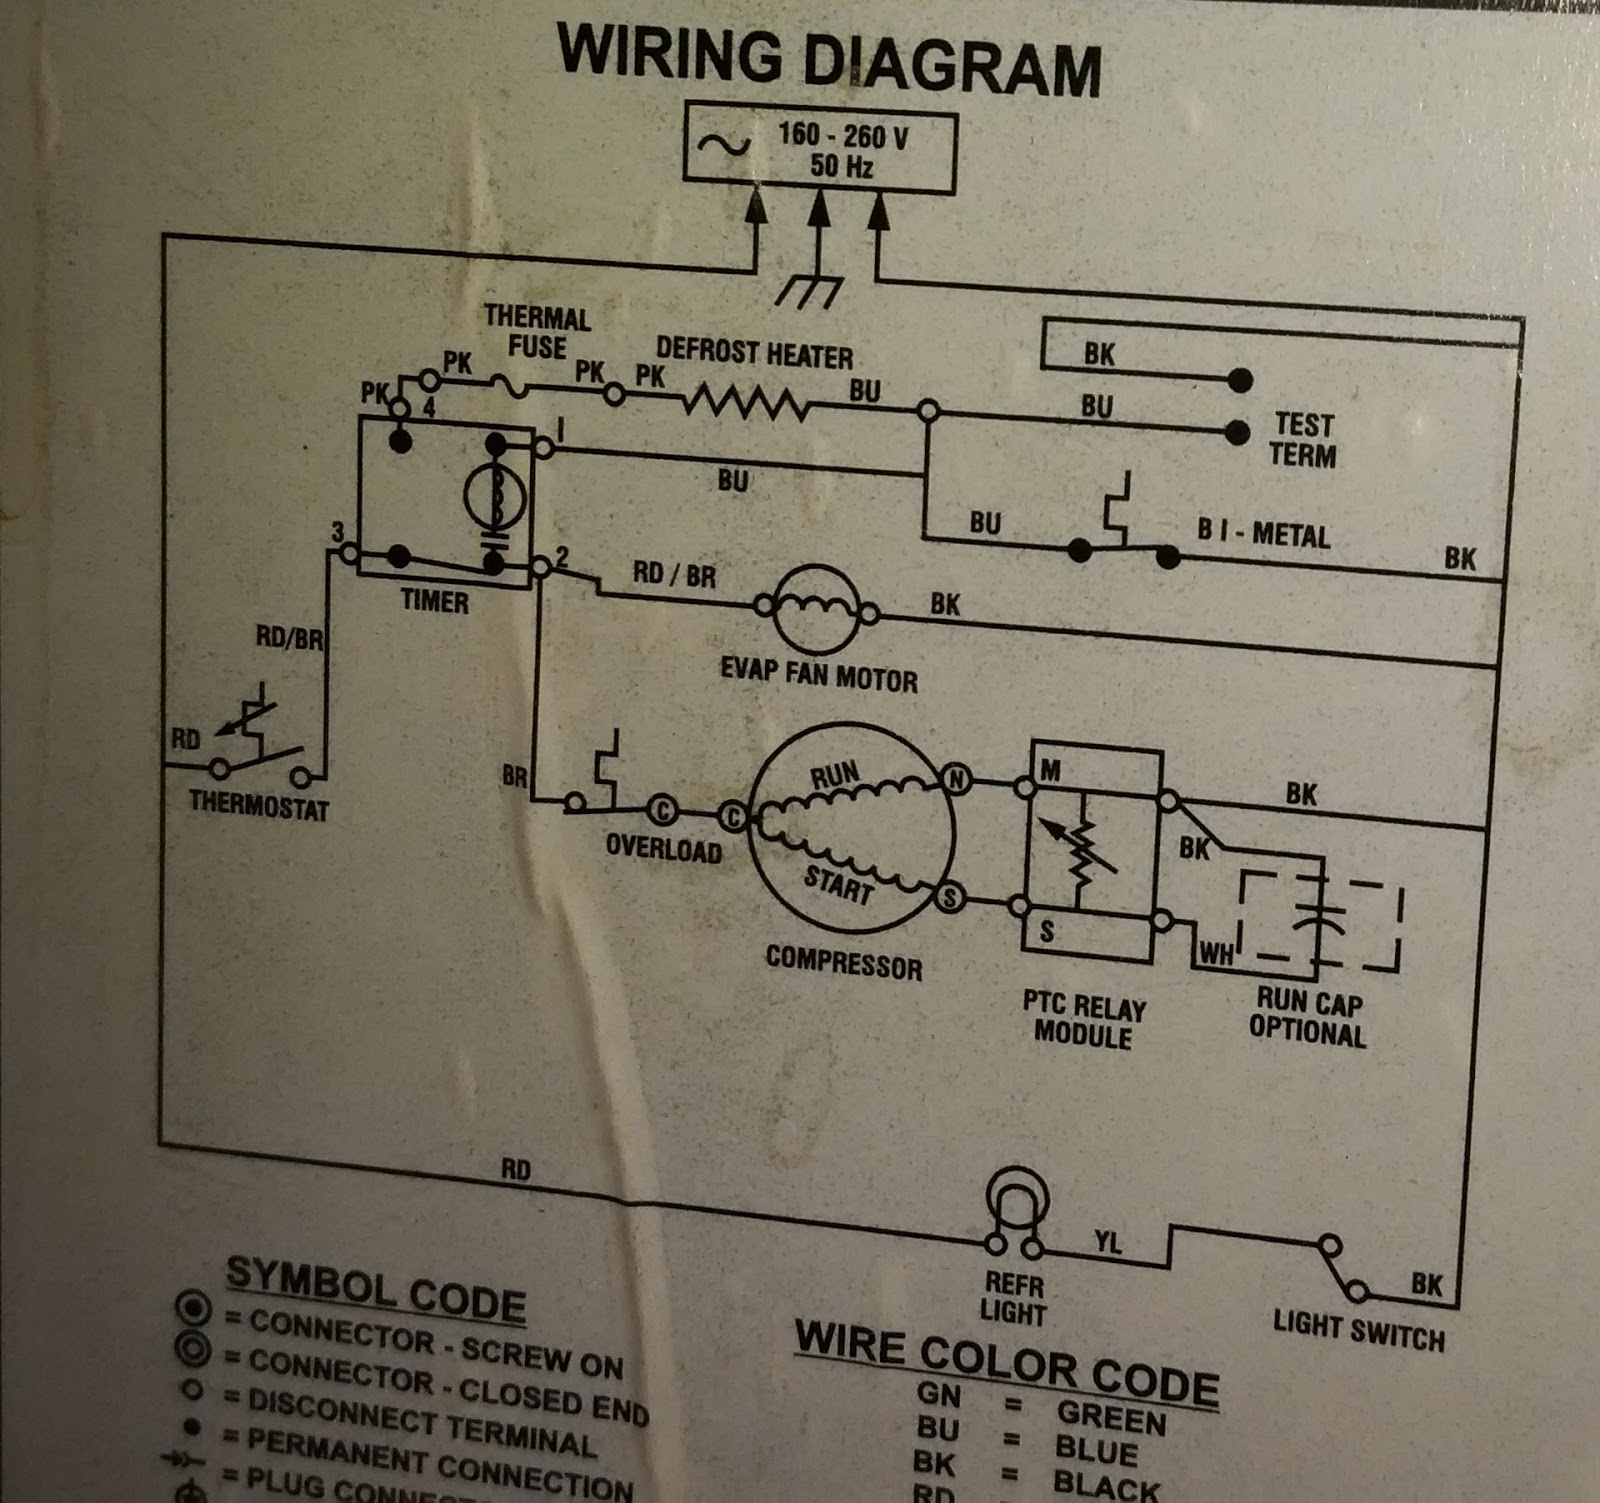 small resolution of wiring diagram of double door refrigerator